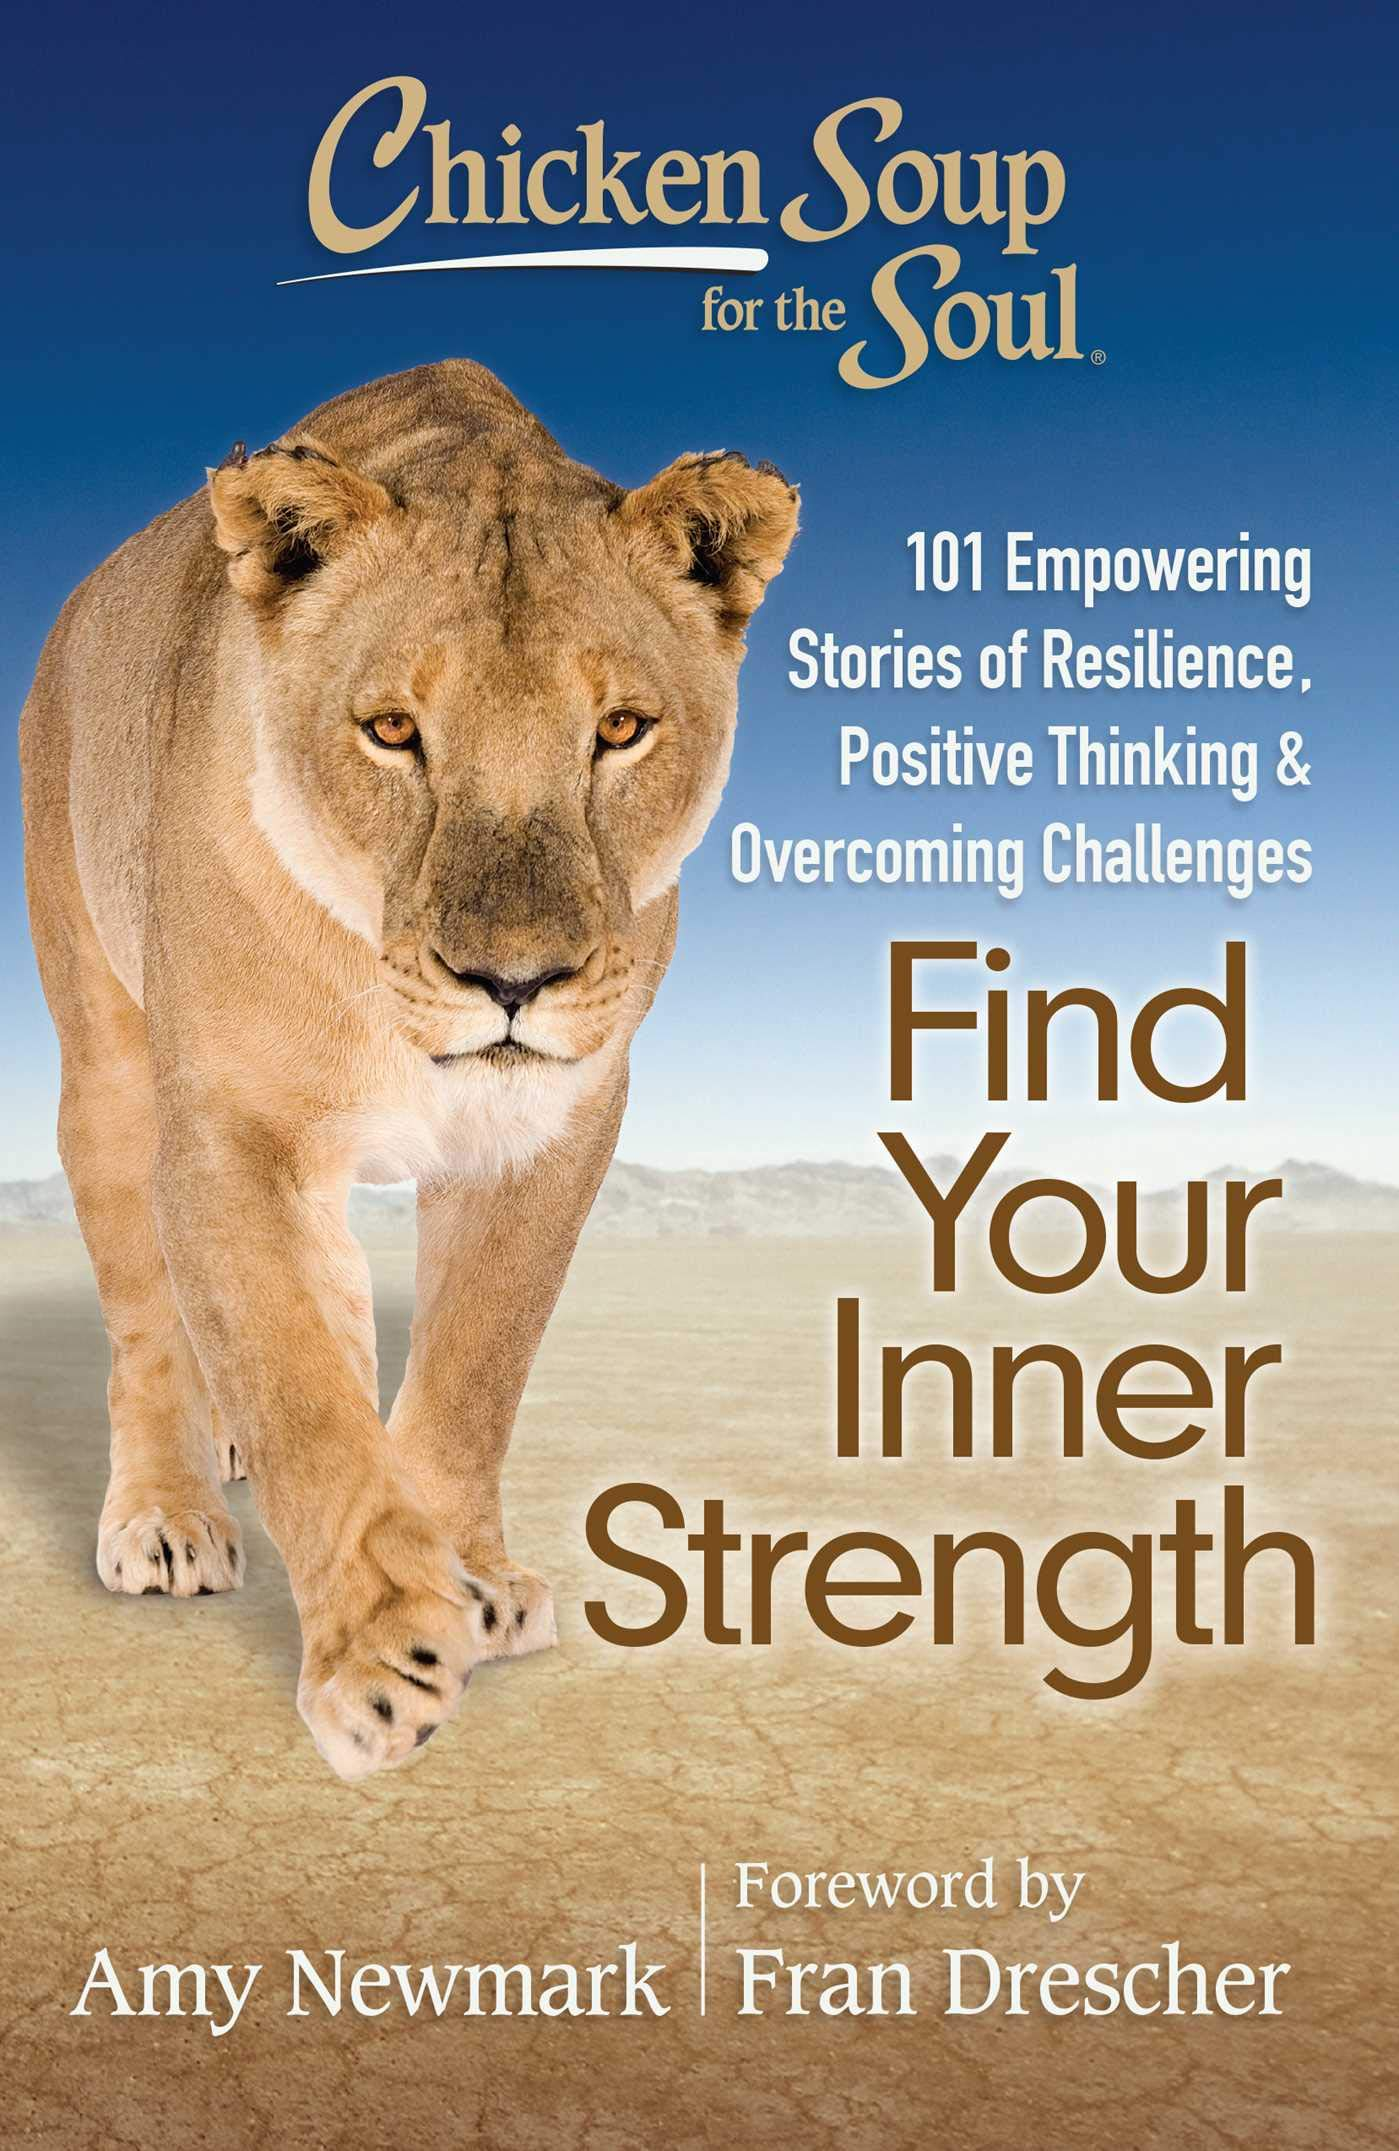 Chicken Soup for the Soul: Find Your Inner Strength: 101 Empowering Stories of Resilience, Positive Thinking, and…